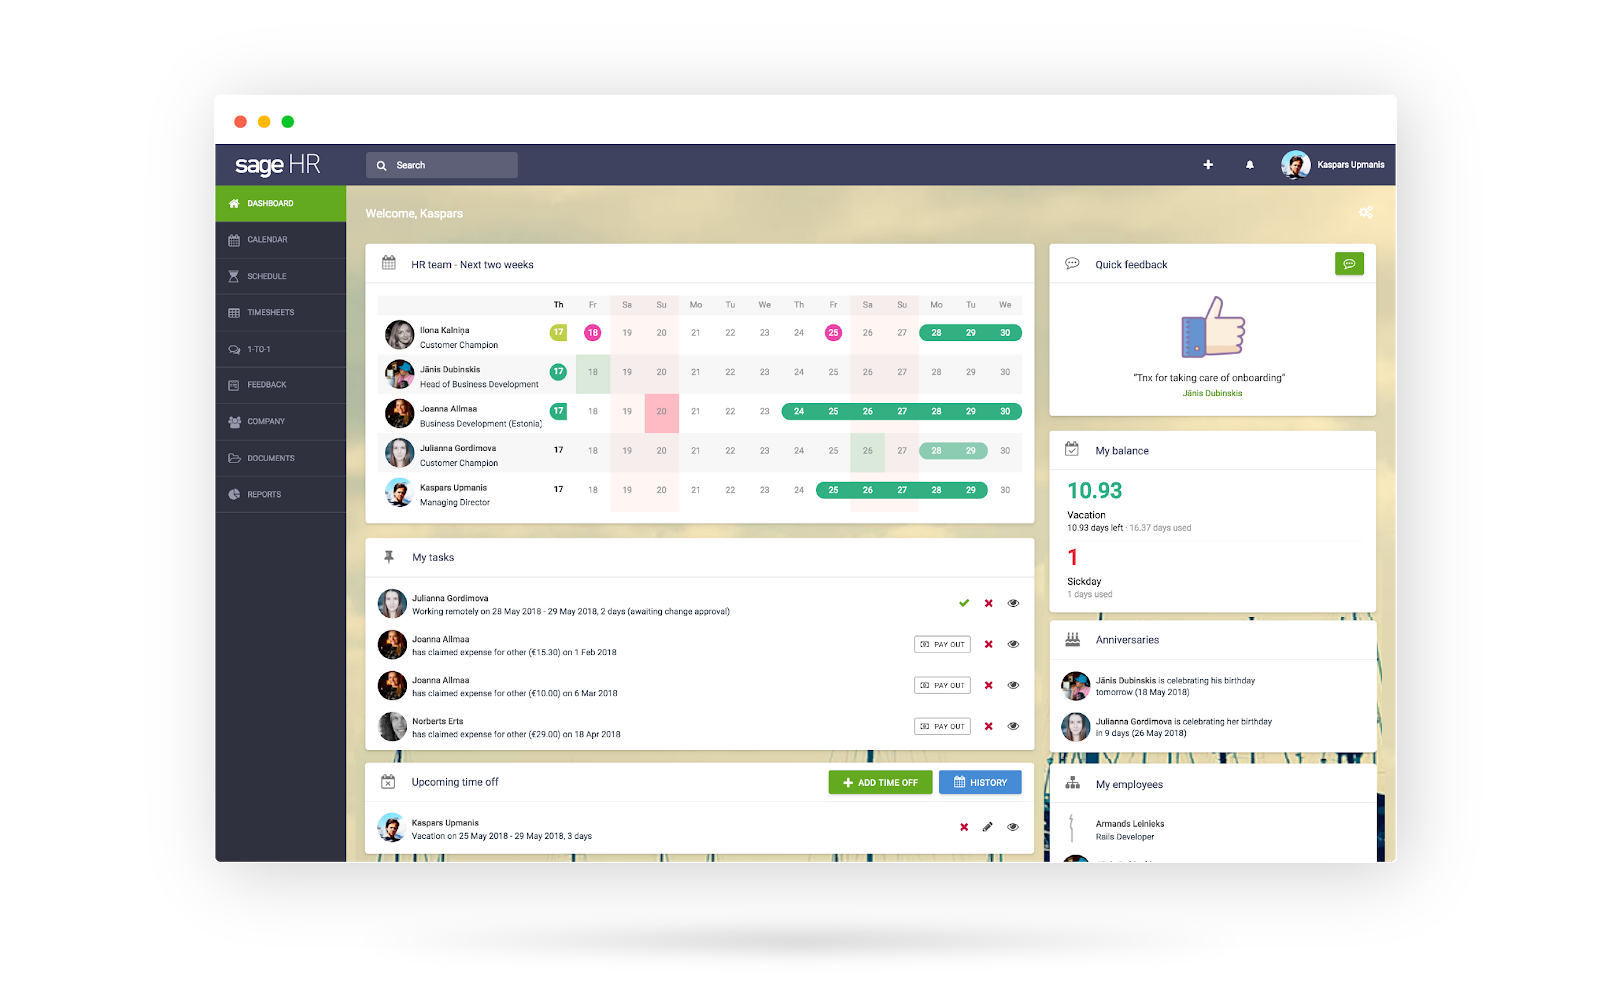 Sage HR product overview